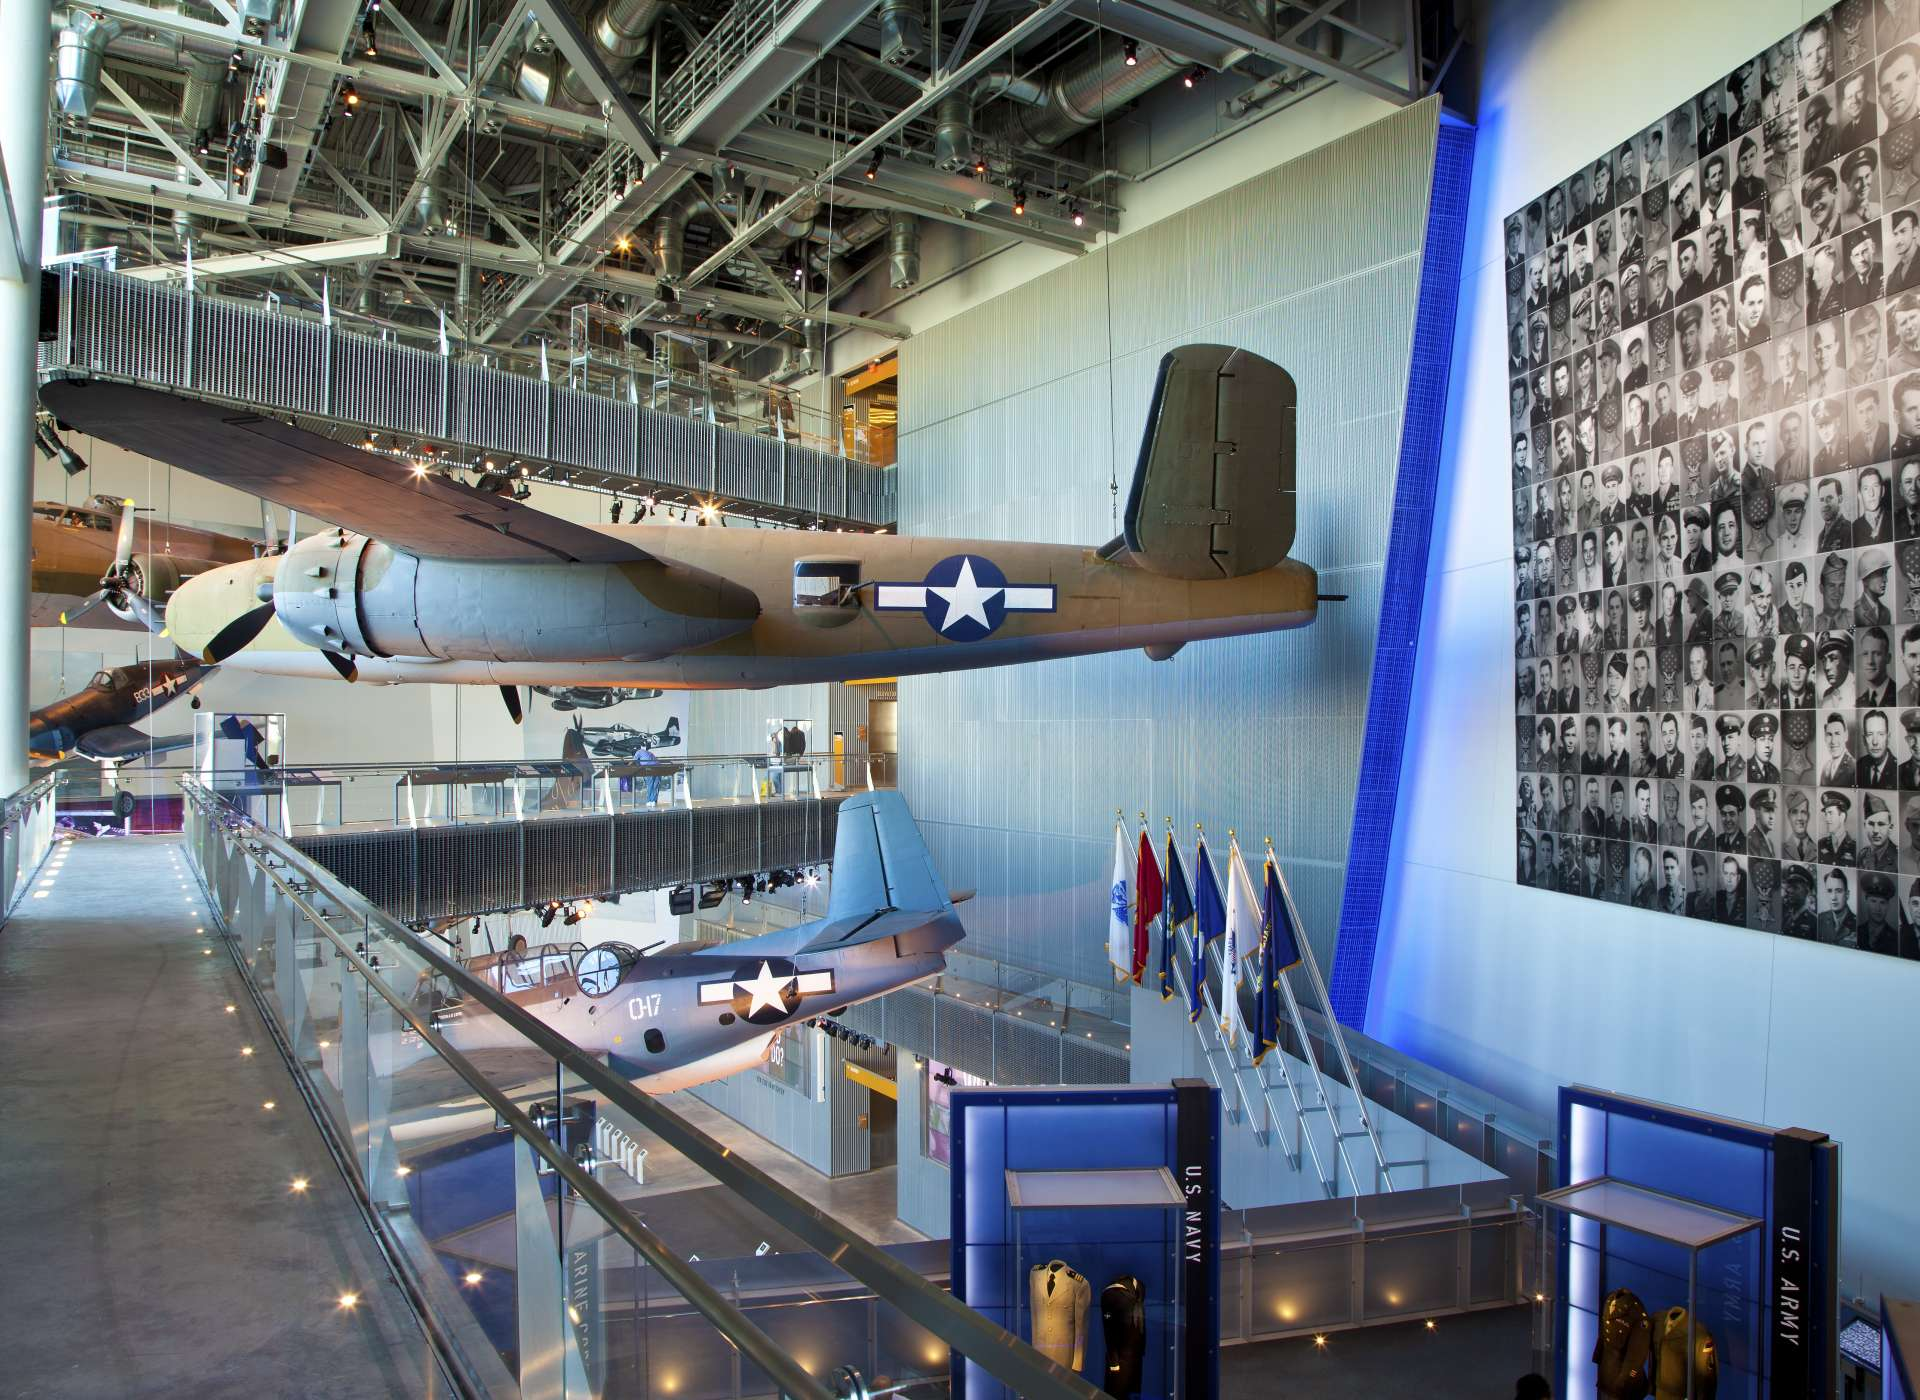 Aircraft in US Freedom Pavilion: The Boeing Center